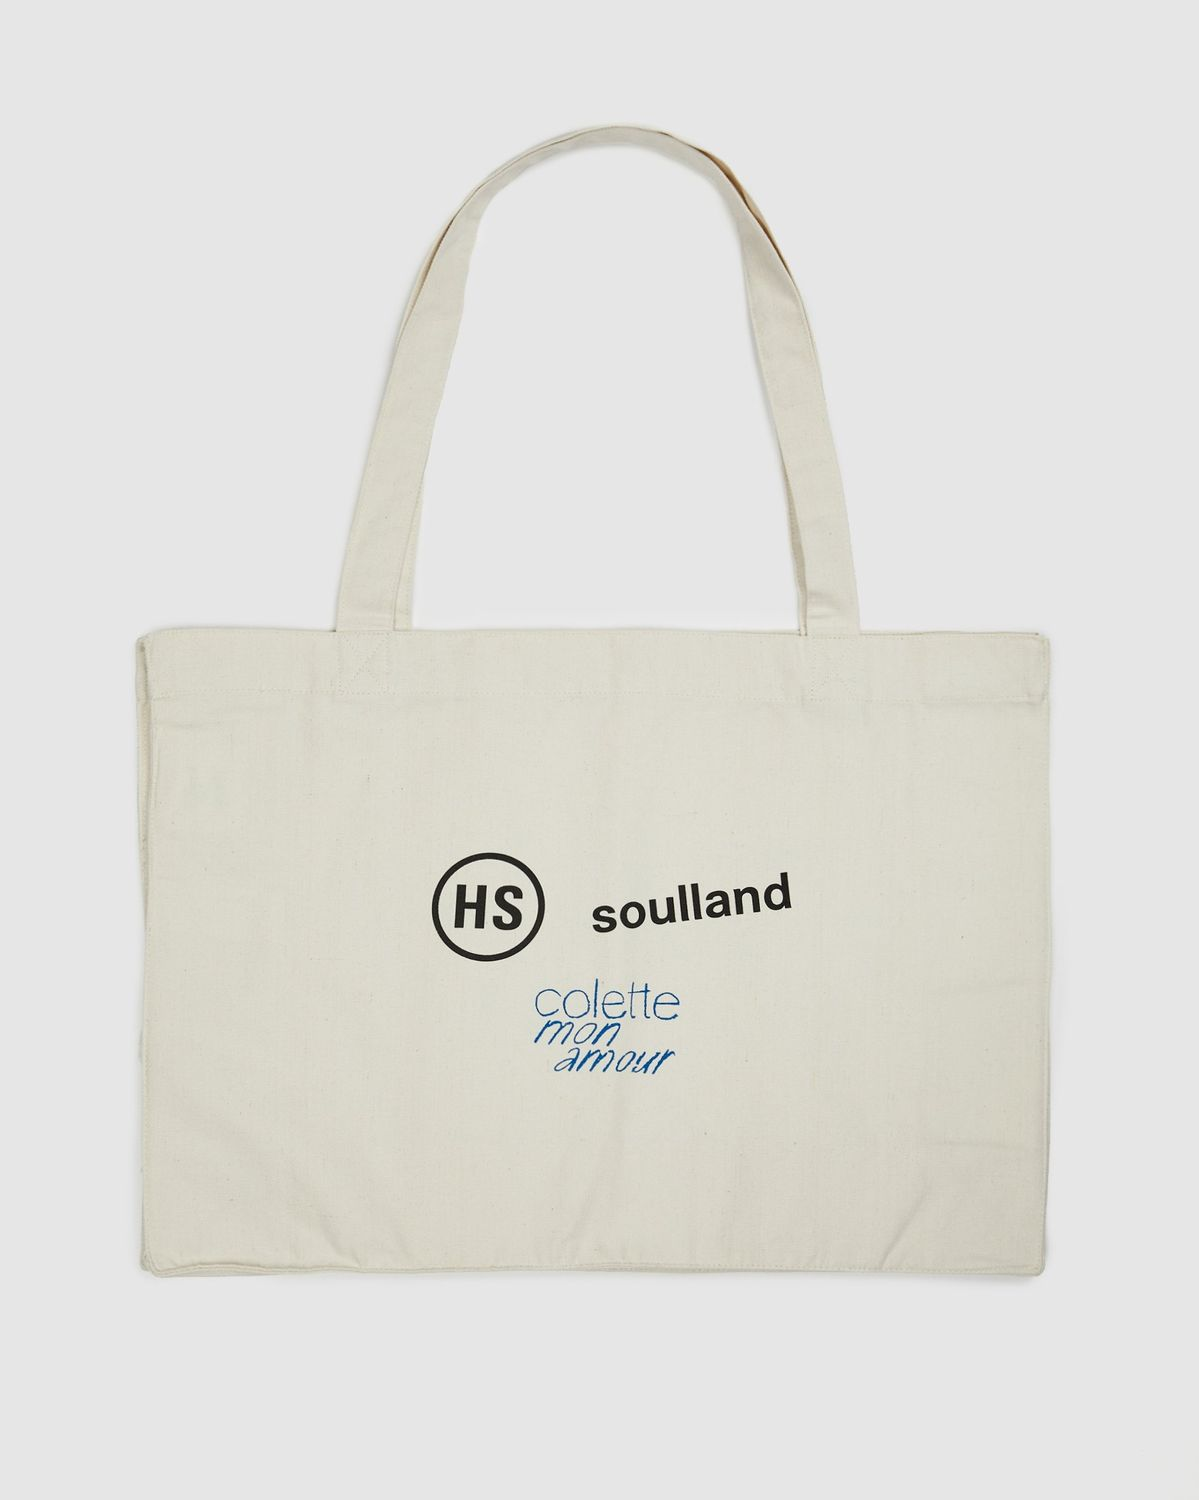 Colette Mon Amour x Soulland -  Snoopy Comics White Totebag - Image 2